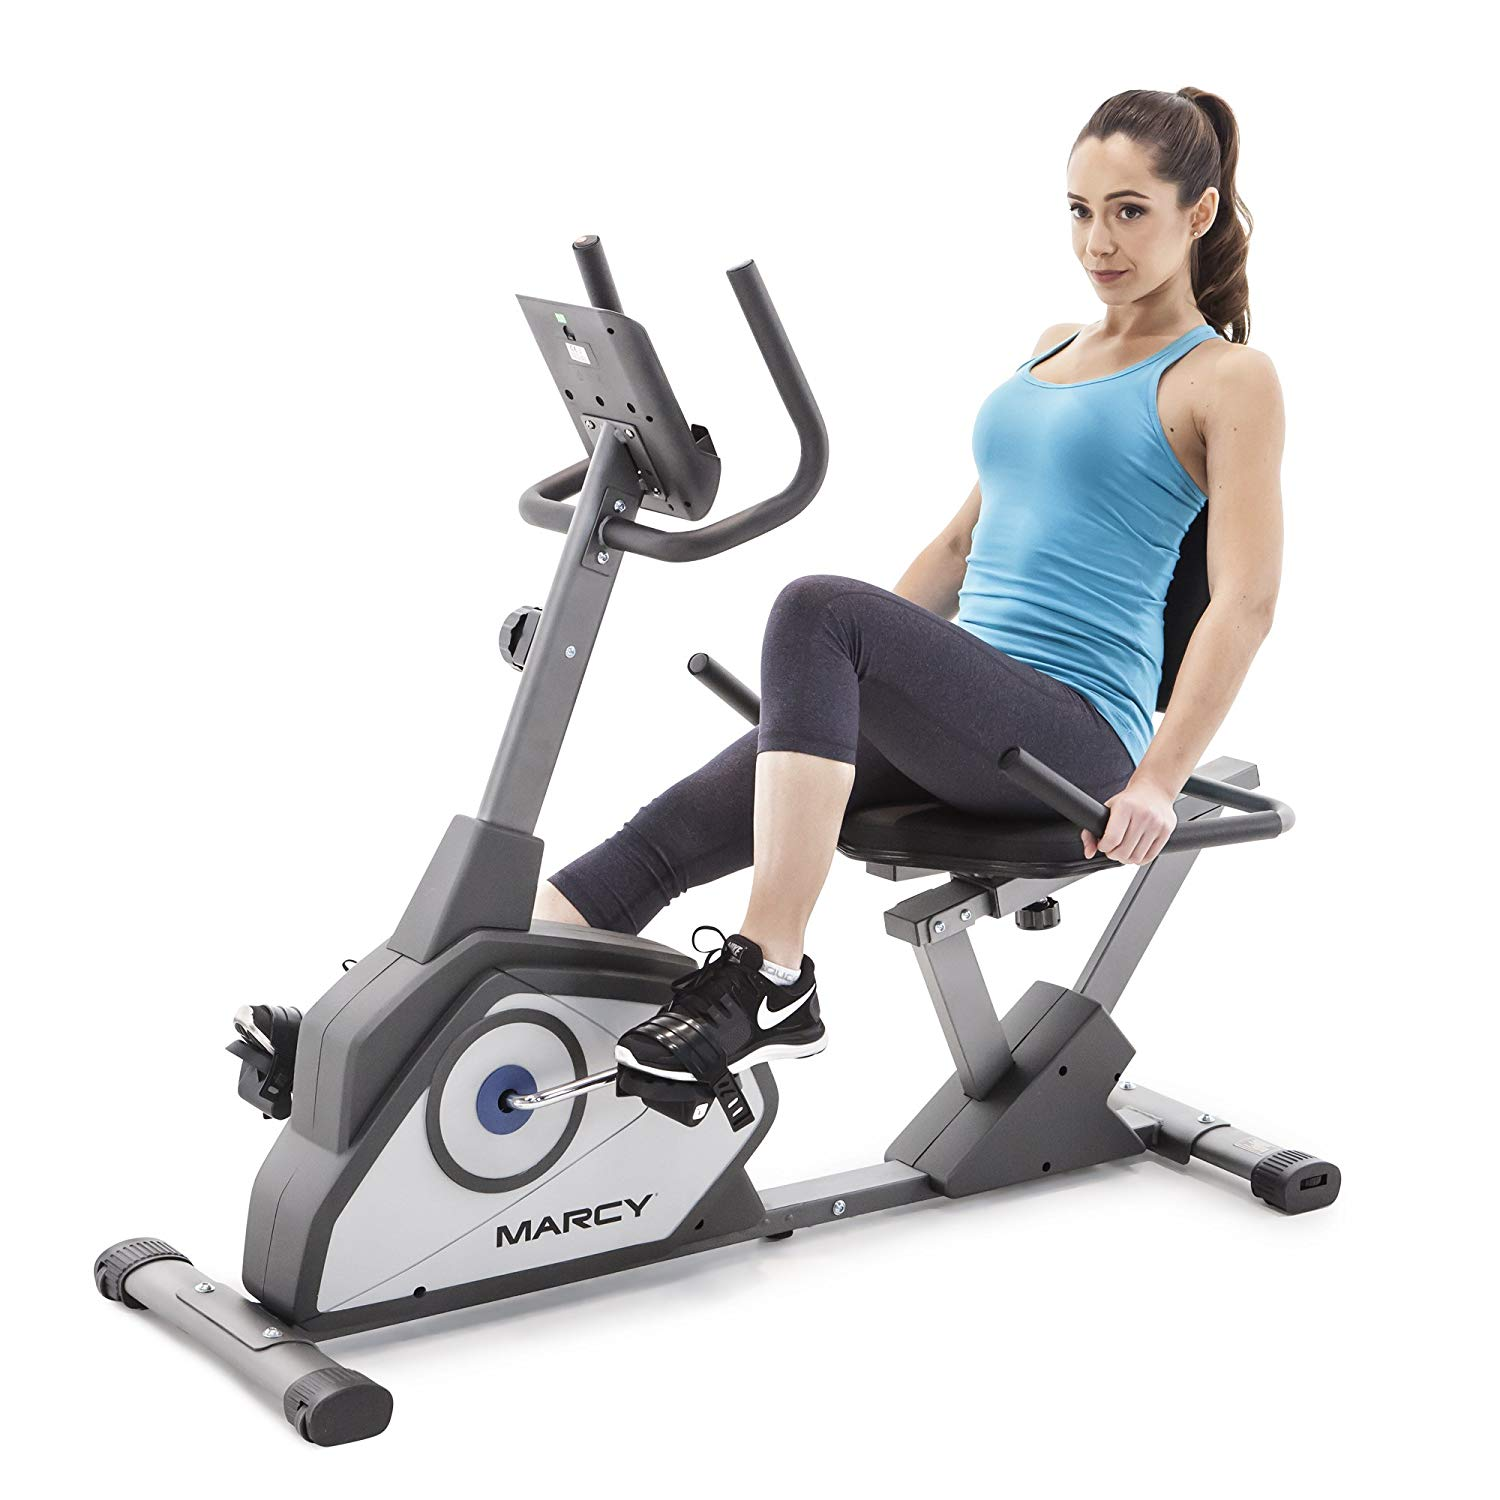 Marcy Magnetic Recumbent Exercise Bike with 8 Resistance Levels NS-40502R